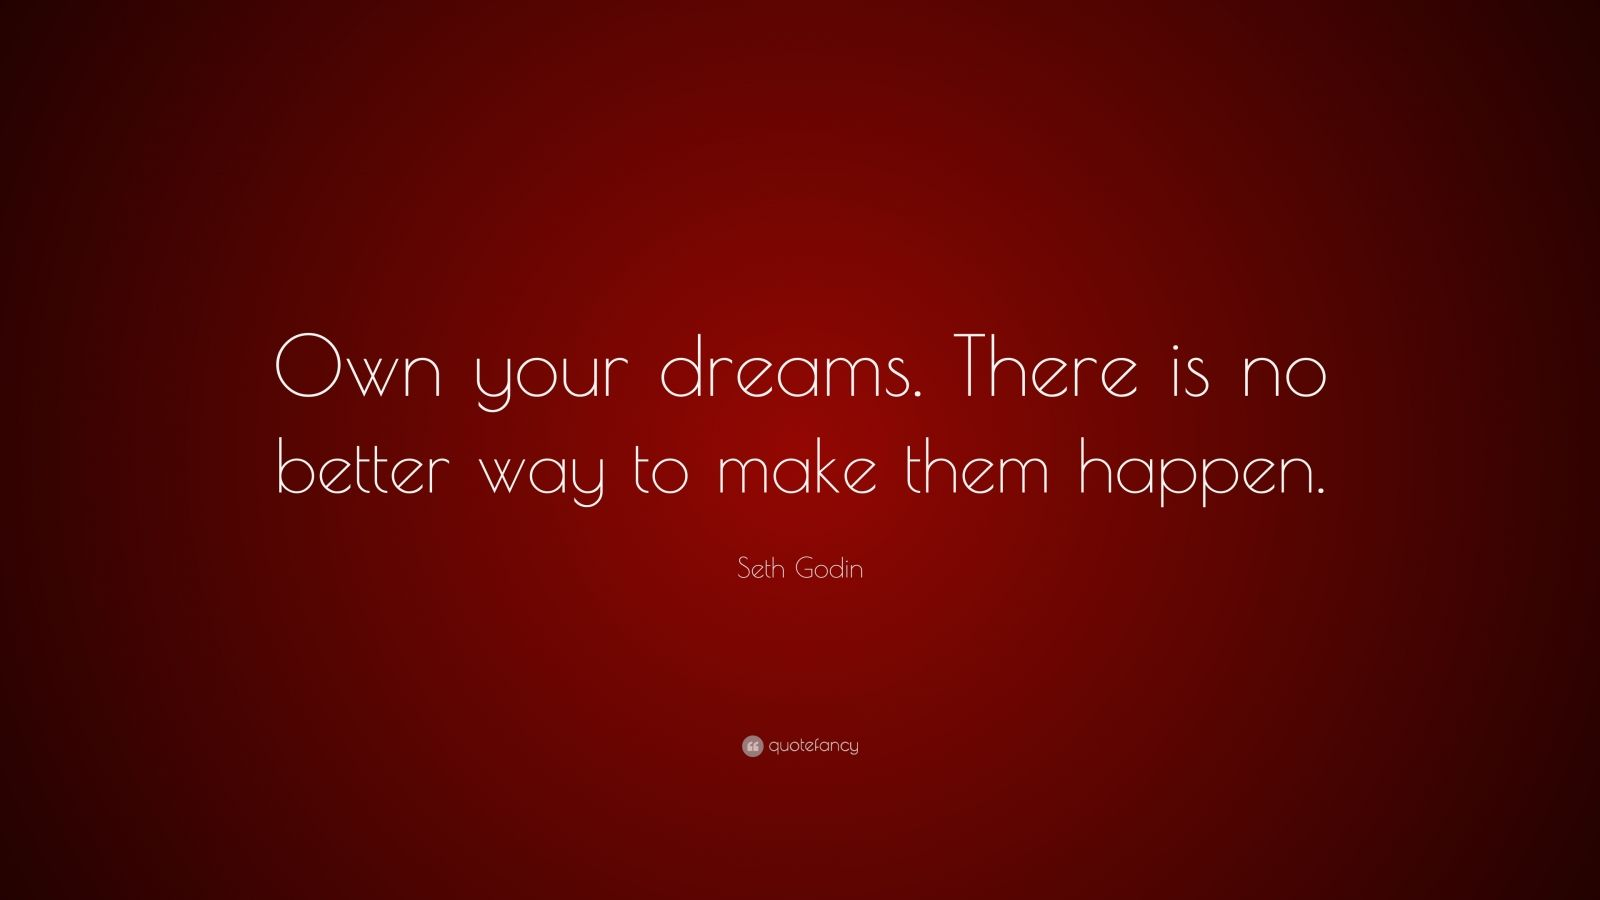 """Seth Godin Quote: """"Own your dreams. There is no better way to make them happen."""""""